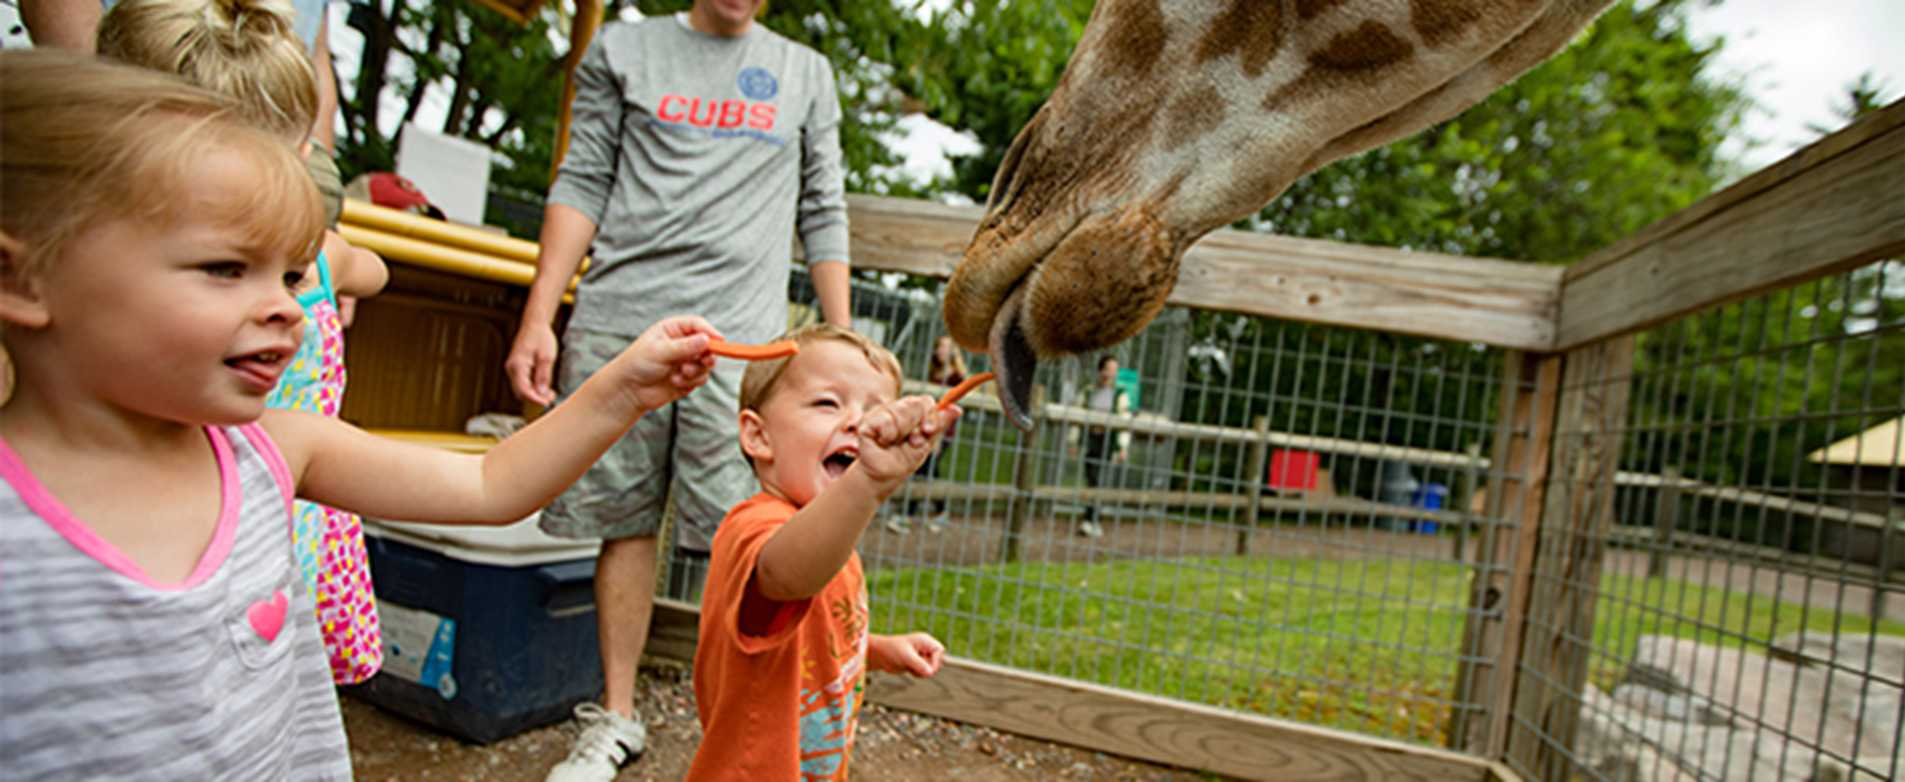 Children Feeding Giraffe at Wildwood Wildlife Adventure Park